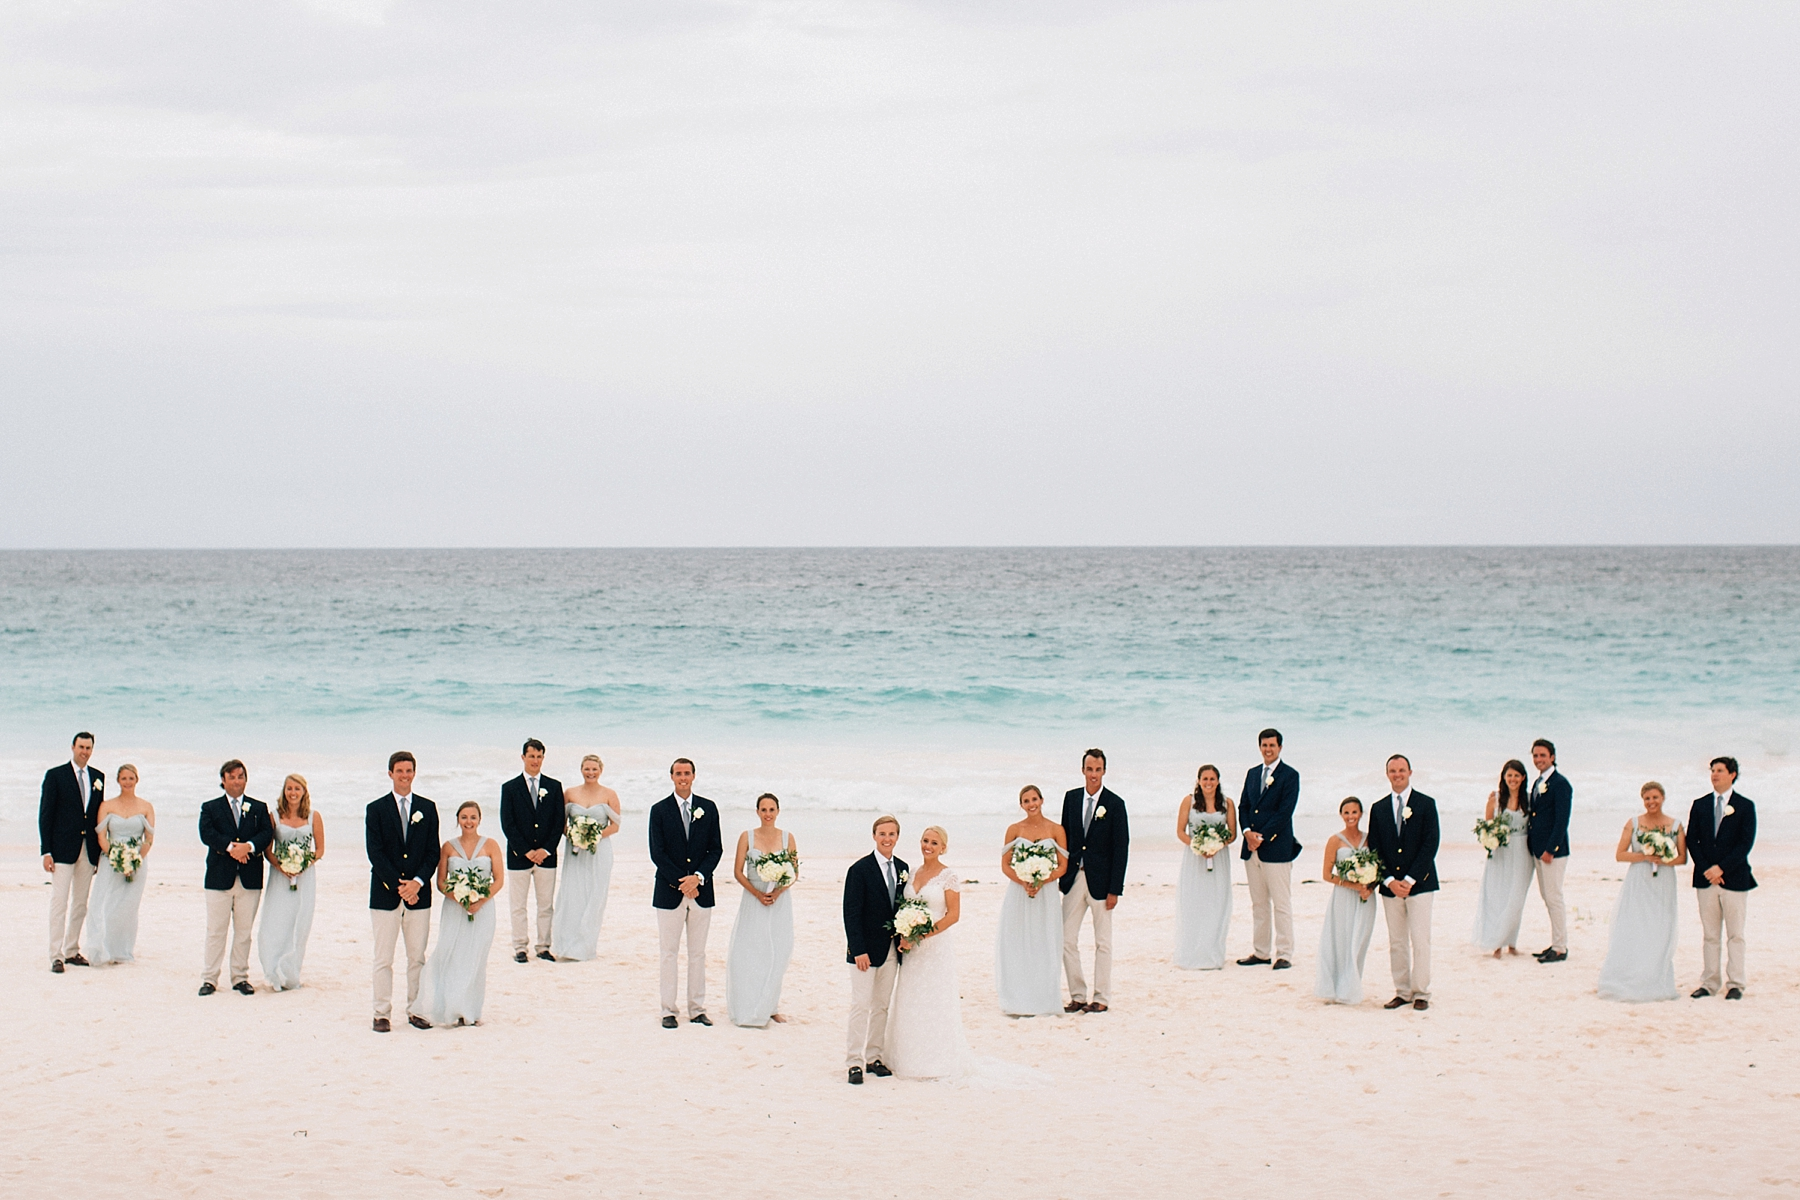 briland-wedding-photographer-harbour-island-bahamas_0031.jpg